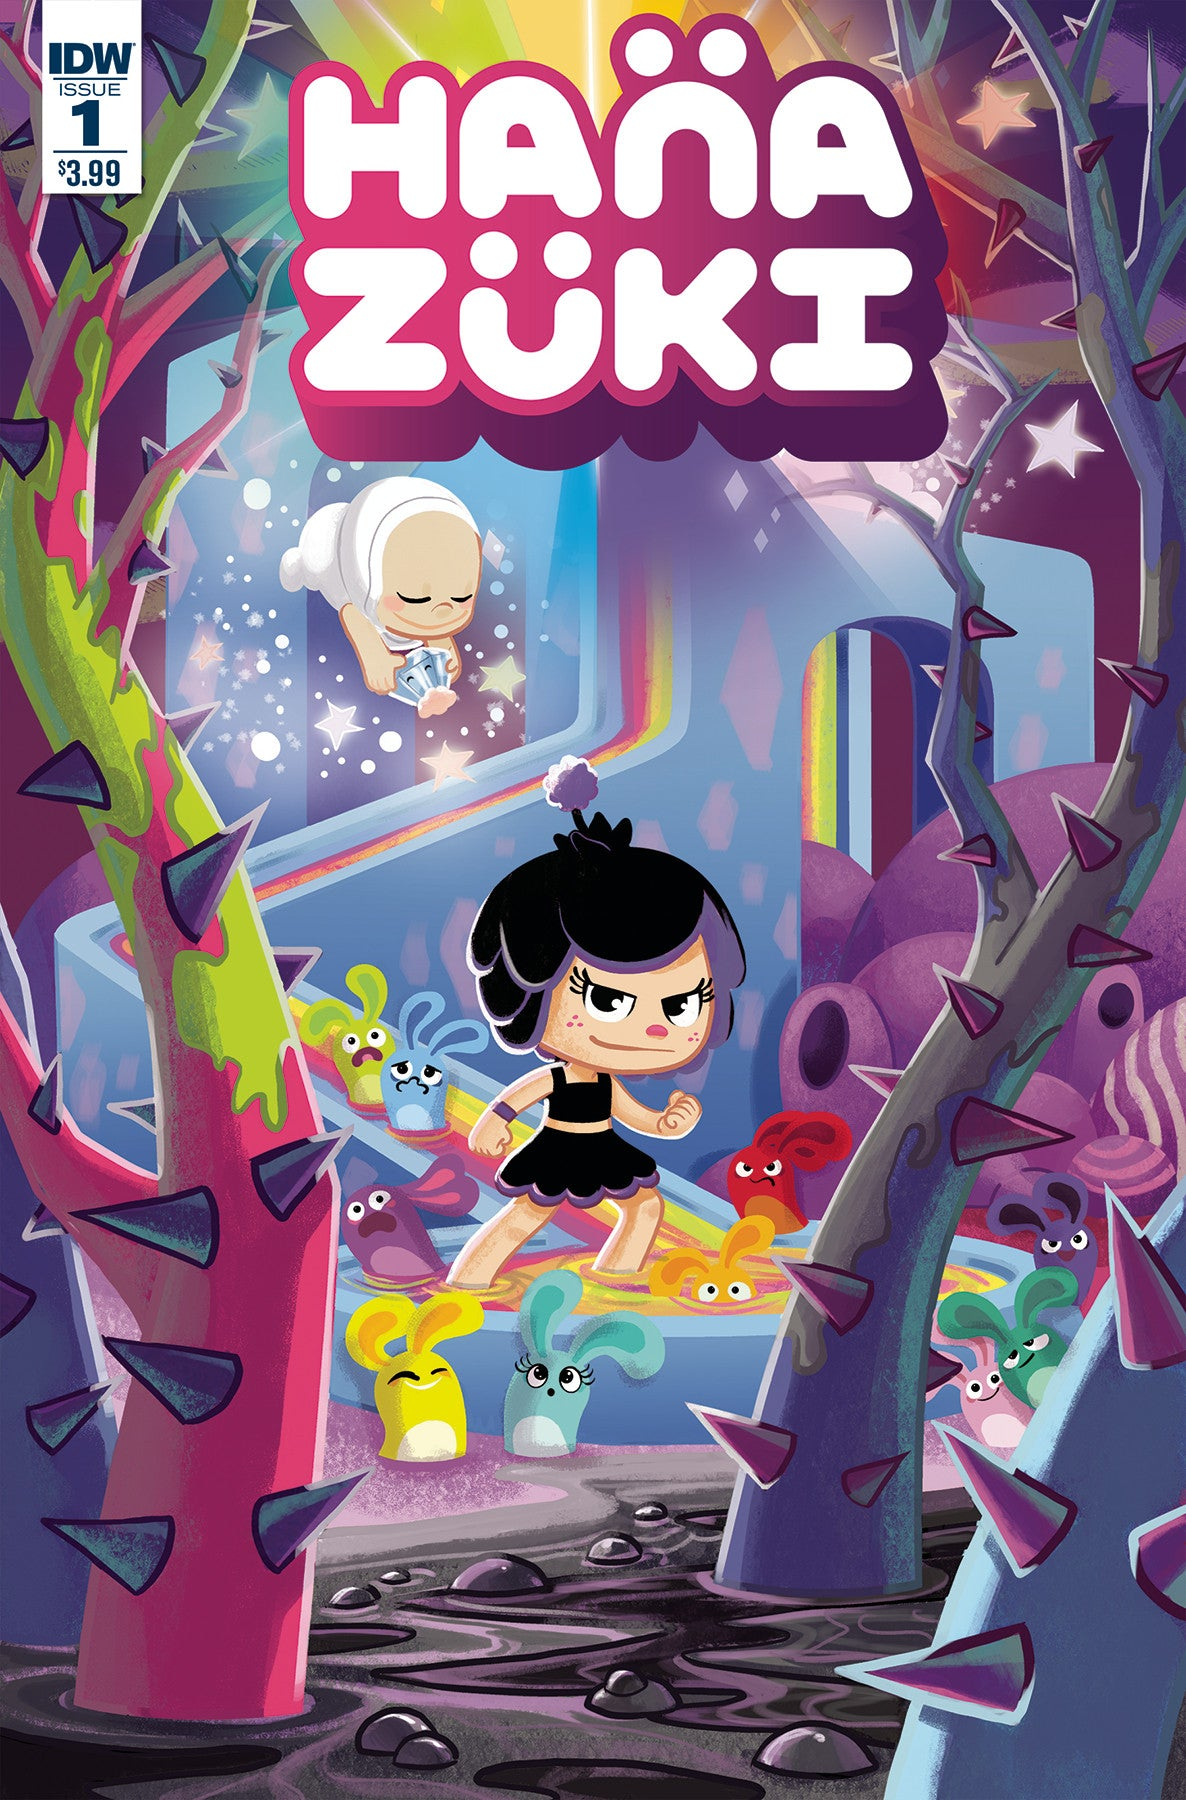 HANAZUKI FULL OF TREASURES #1